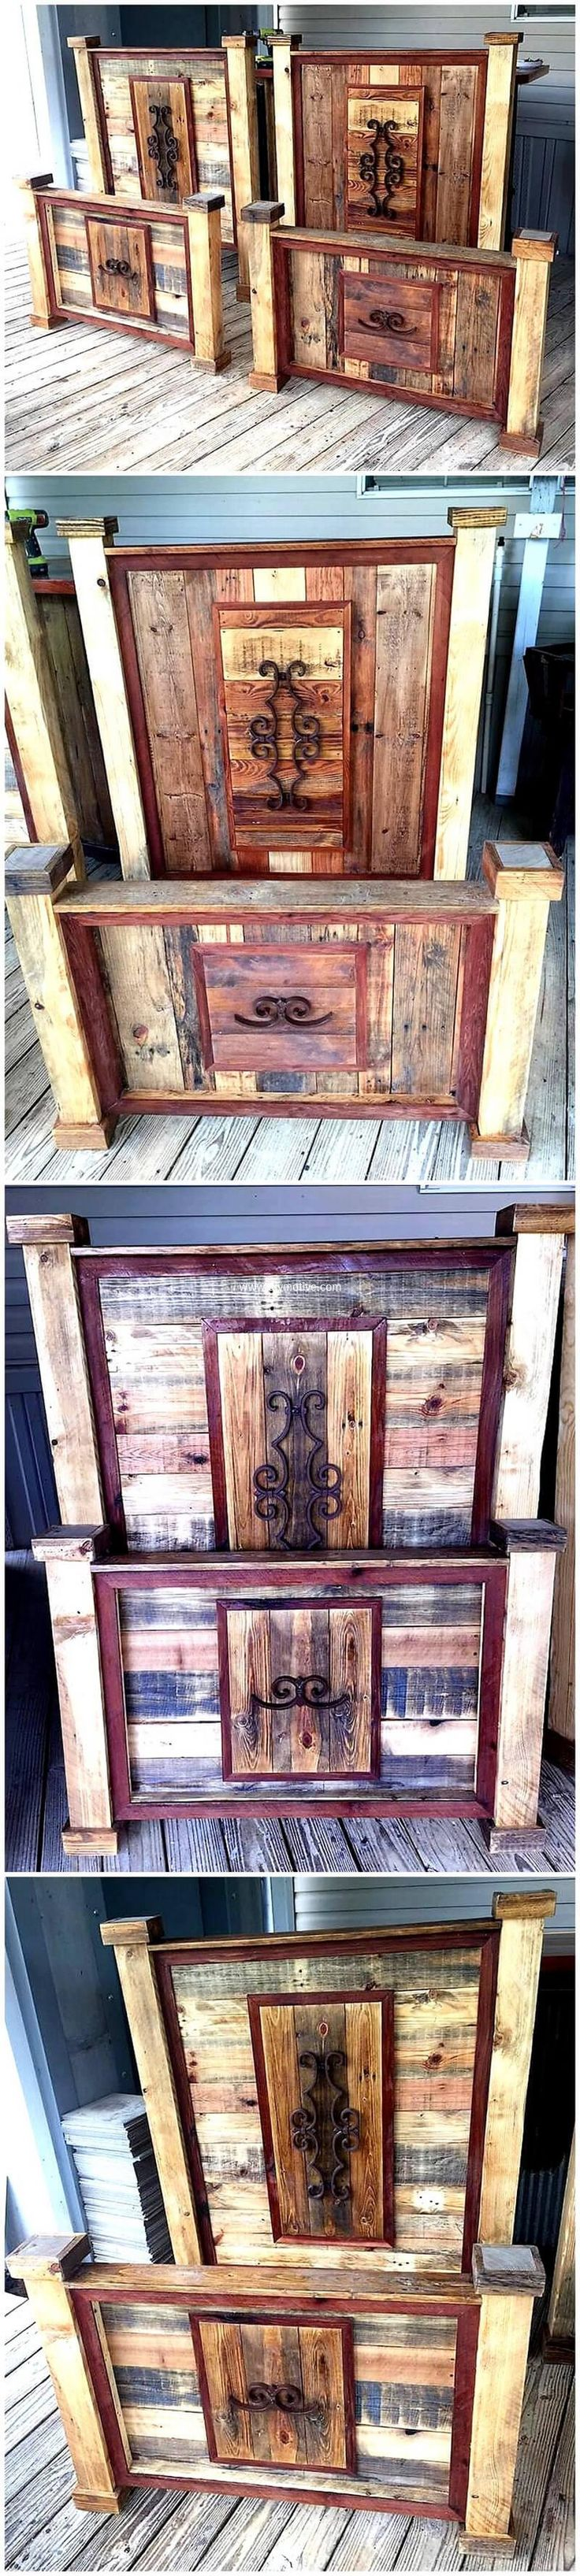 Pallet wood bed frame is unique idea by reusing wood pallets.Customizing is always in fashion and it is very smart to craft something that you can place at your unused space or a something of your domestic utility that you need on daily basis.  #headboard #palletheadboard #pallets #woodpallet #palletfurniture #palletproject #palletideas #recycle #recycledpallet #reclaimed #repurposed #reused #restore #upcycle #diy #palletart #pallet #recycling #upcycling #refurnish #recycled #woodwork